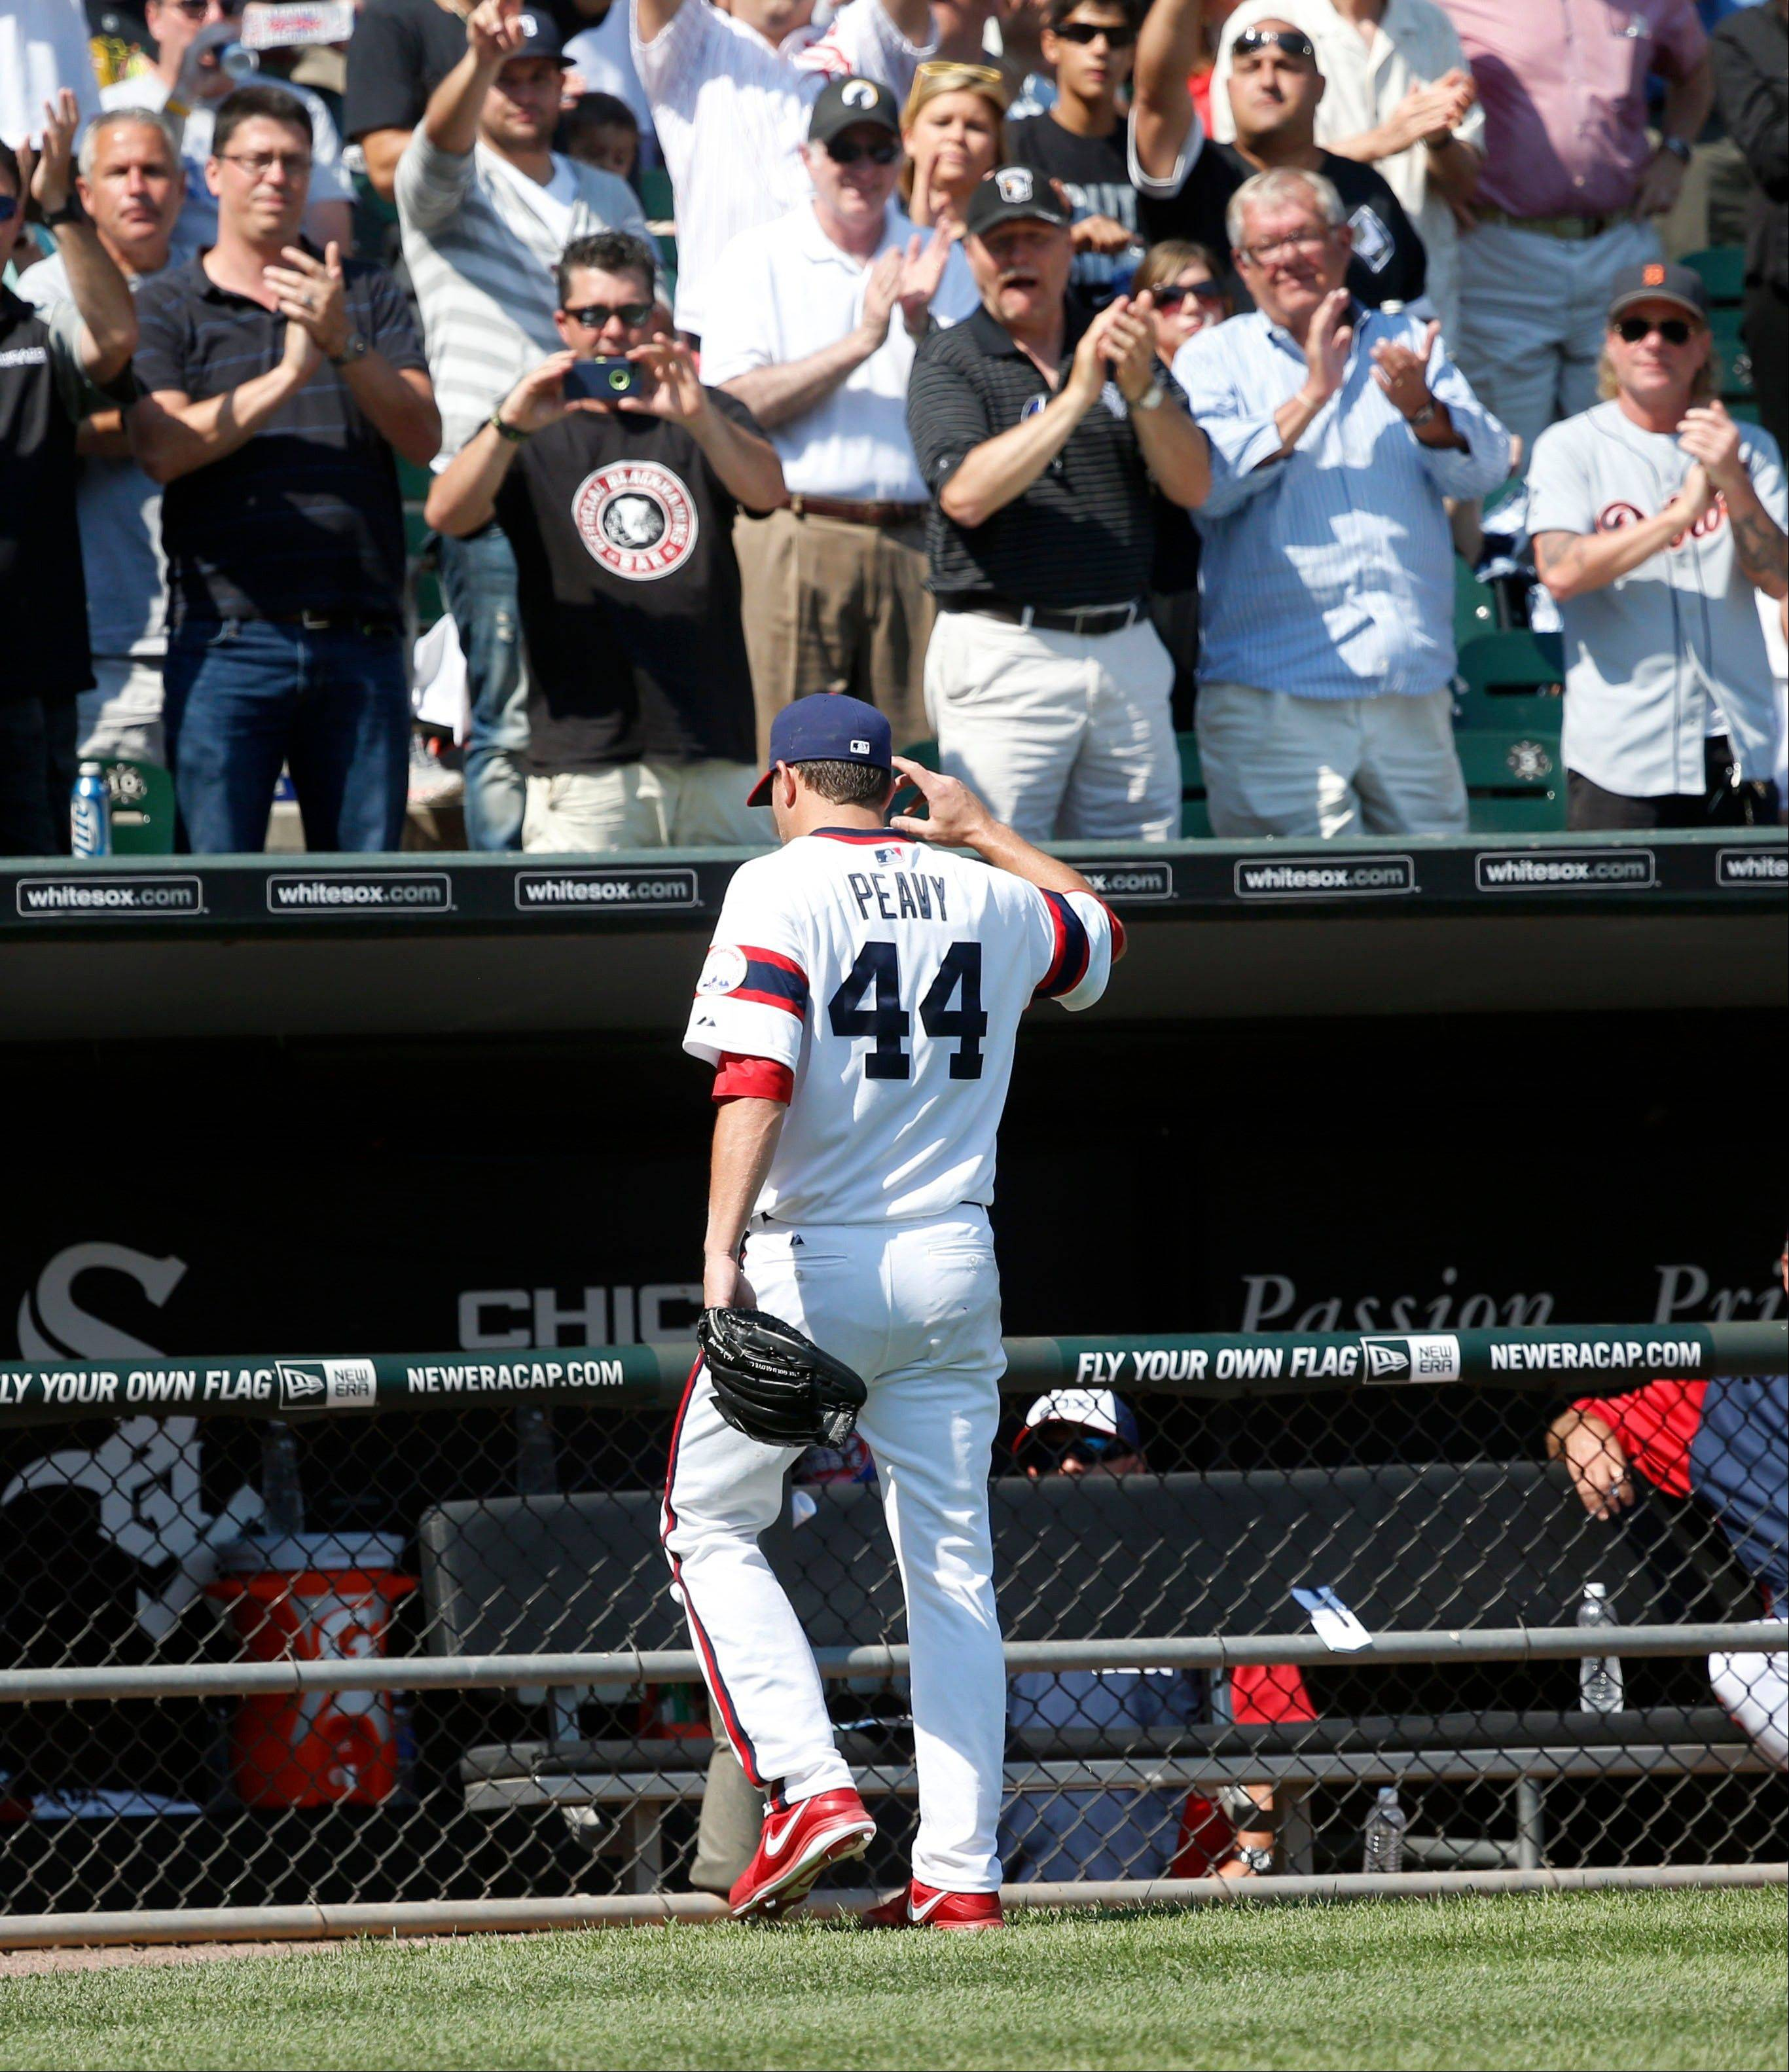 Jake Peavy waves to a cheering crowd as he leaves during the eighth inning of the White Sox� 7-4 victory over Detroit on Thursday at U.S. Cellular Field.